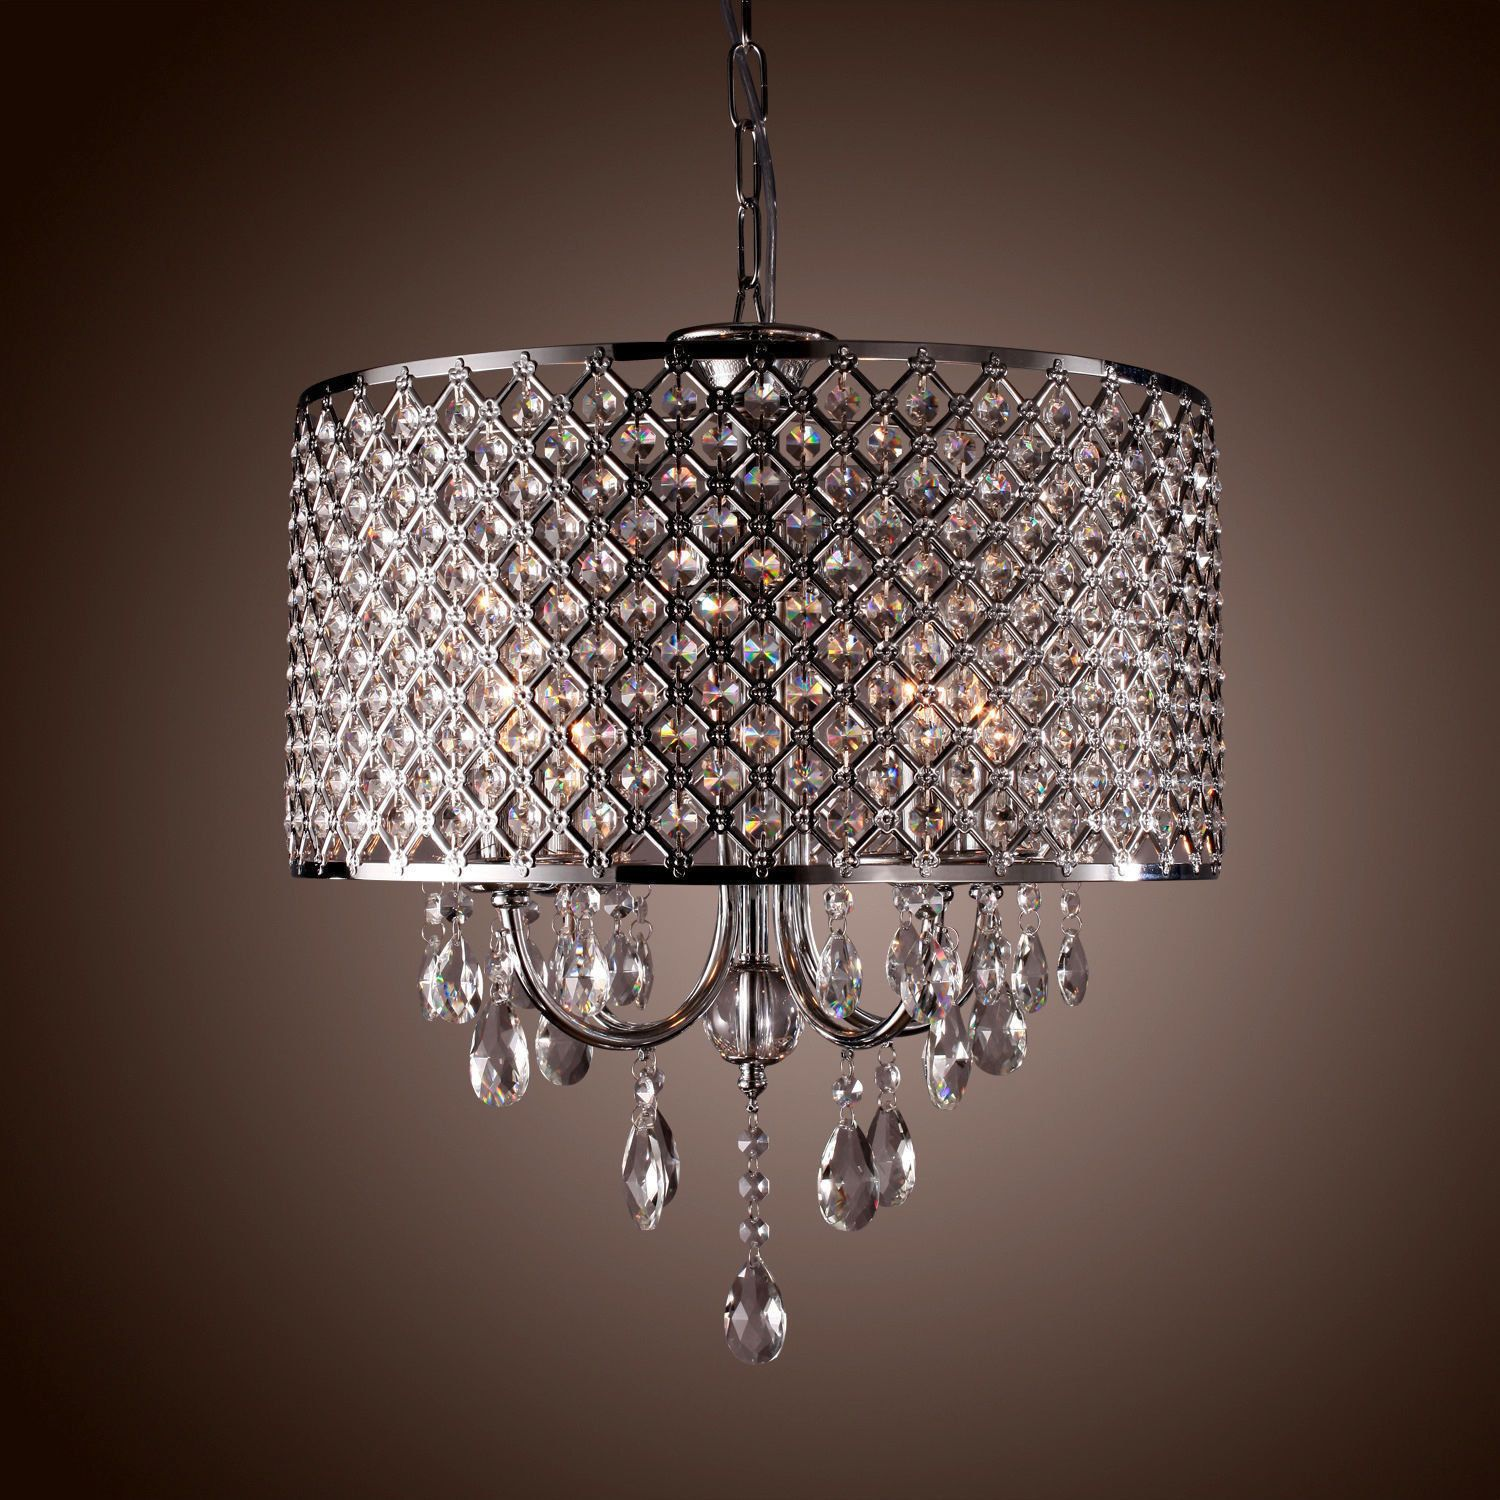 Modern chandelier crystal droplet pendant ceiling light 4 lamps modern 4 light pendant lights with crystal drops in round light information cord arubaitofo Images